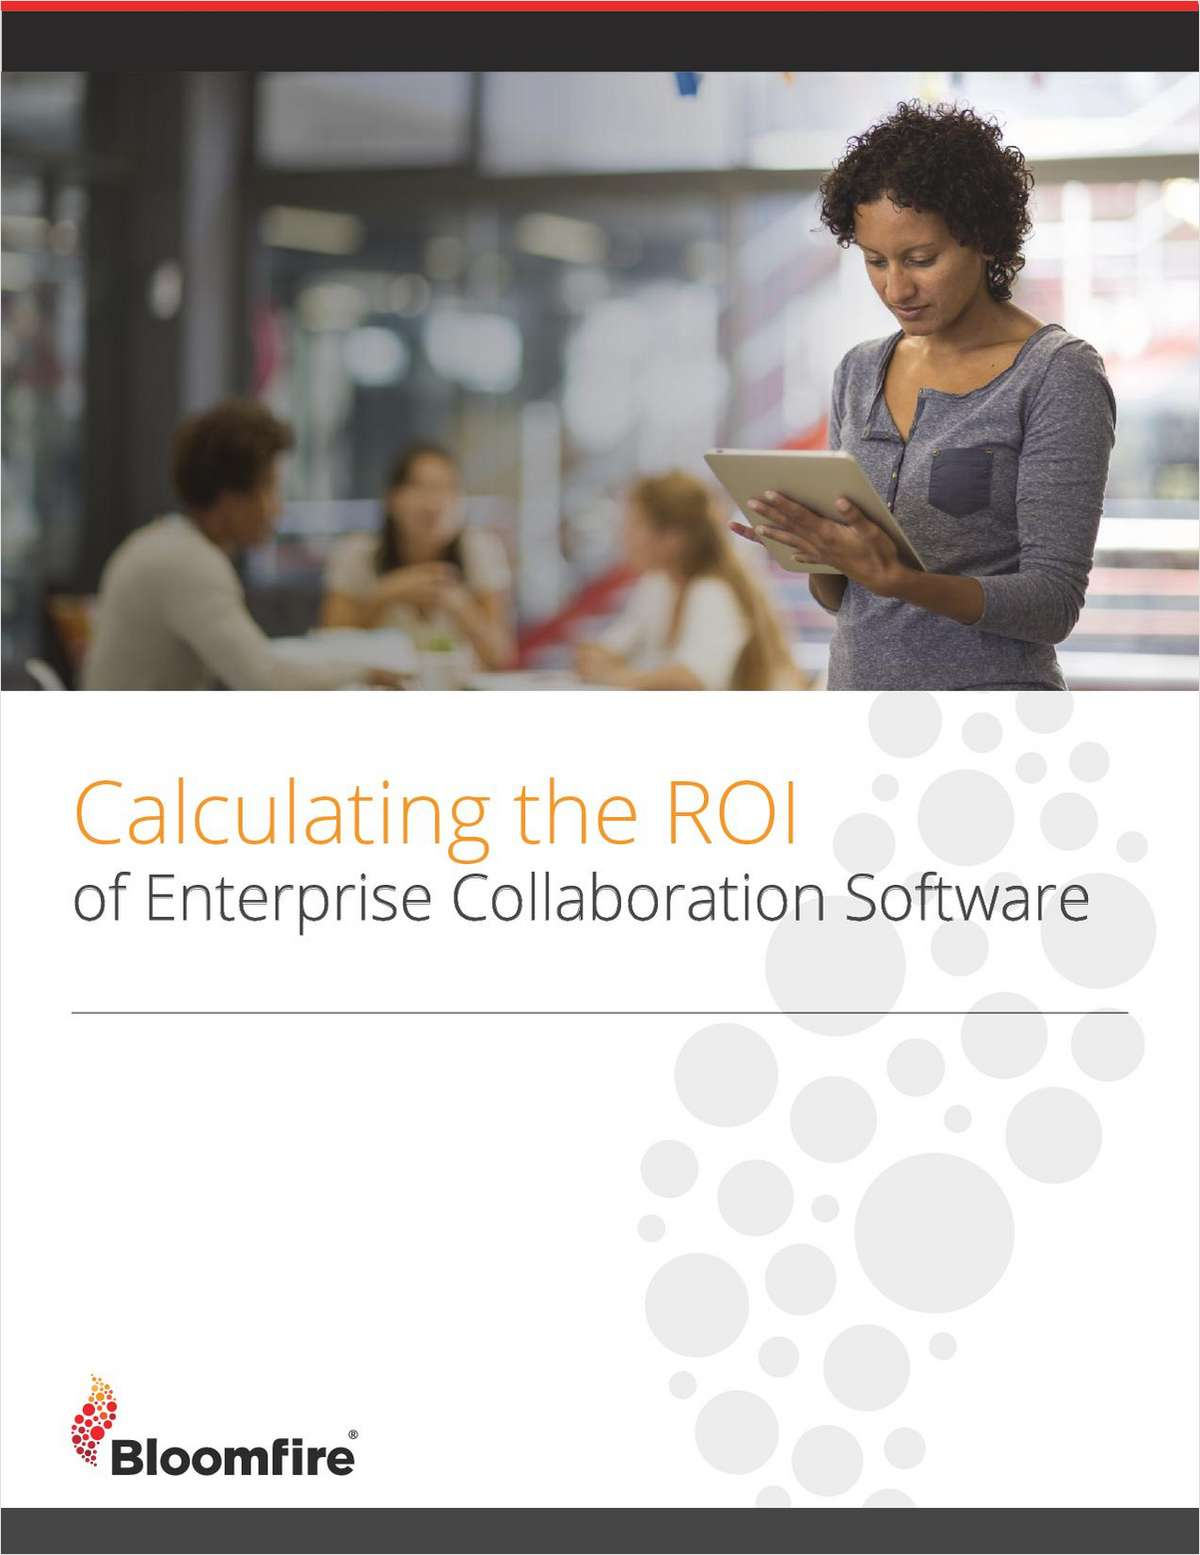 Calculating the ROI of Enterprise Collaboration Software